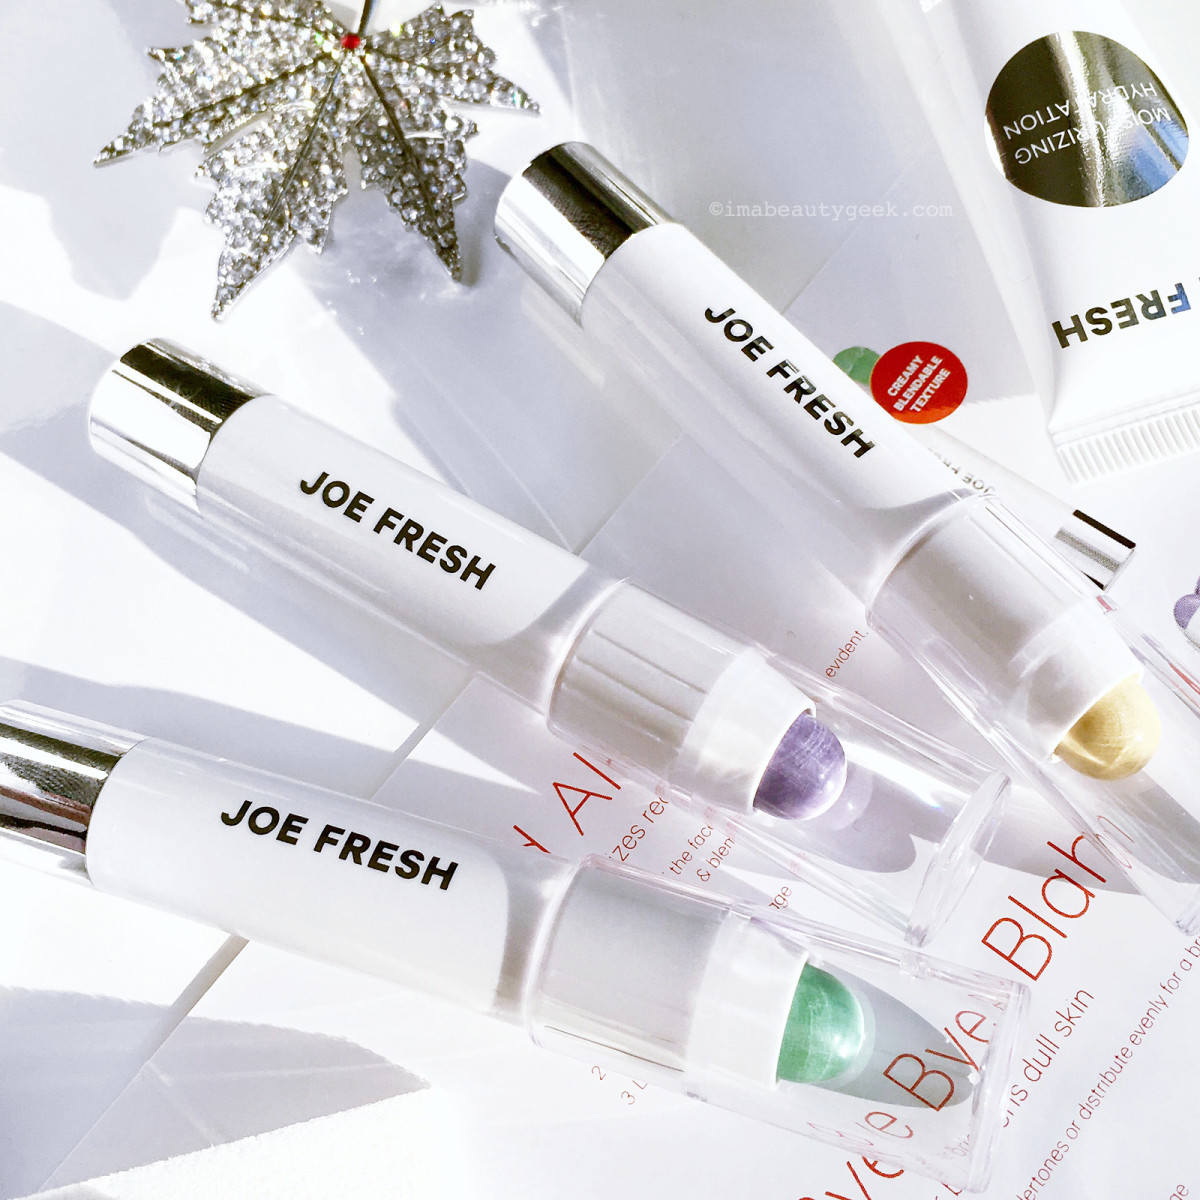 Joe Fresh Colour Correcting Crayons, Hydrating Primer and a Joe Fresh Cosmetic Wedge or two